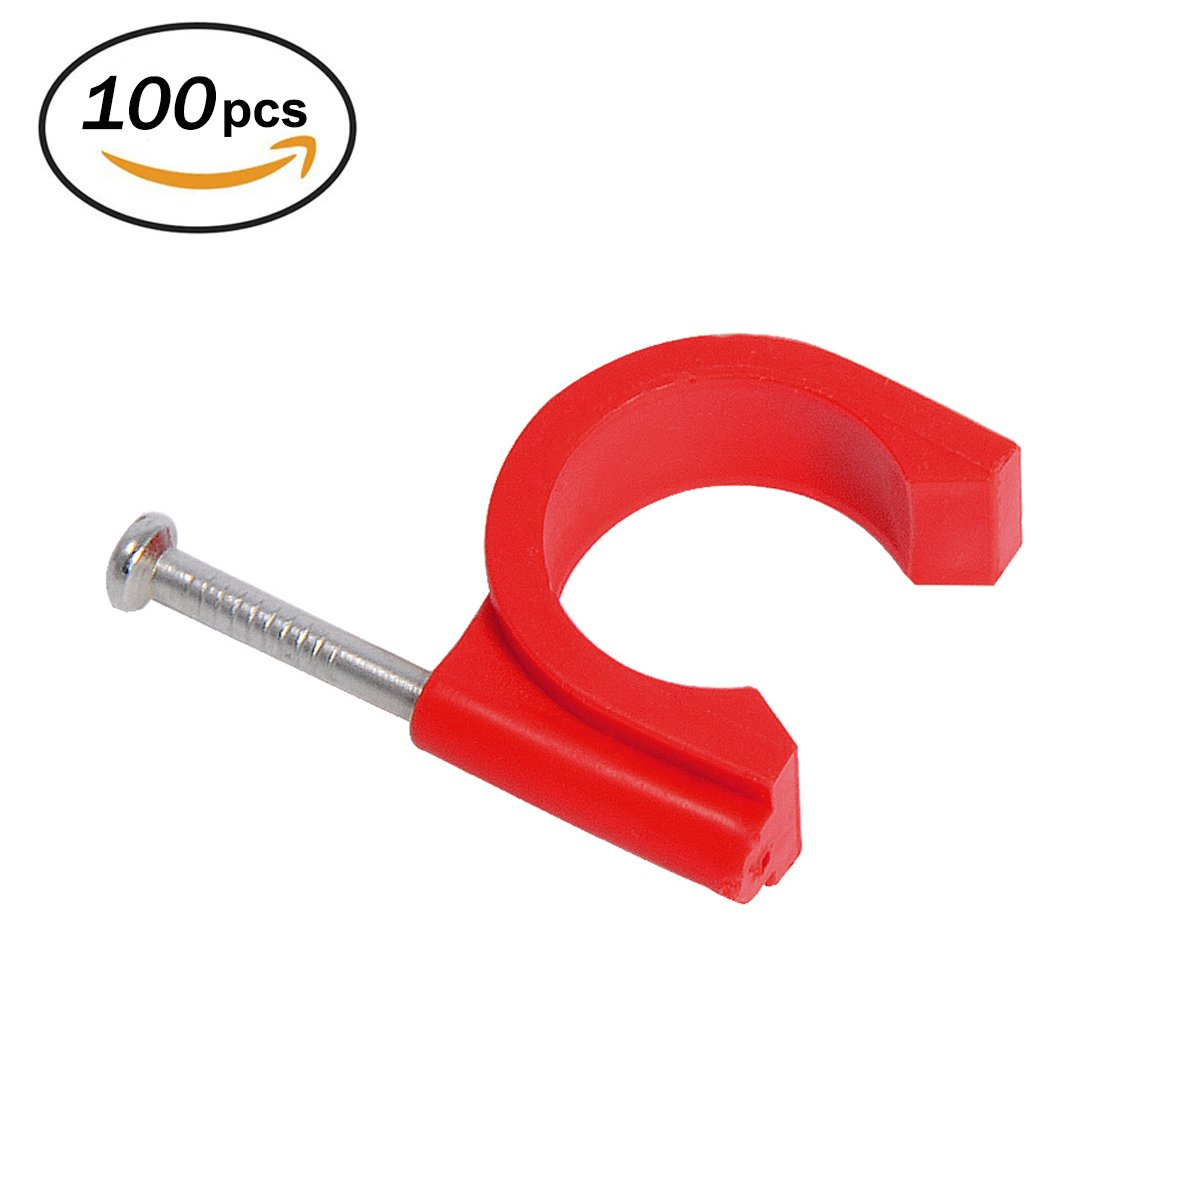 Firecore 3/4 Inch Tube Talon with Nail J-Hook Pex Pipe Support for Wire Pipe,Cable,Water Pipe, Red(100Pack)